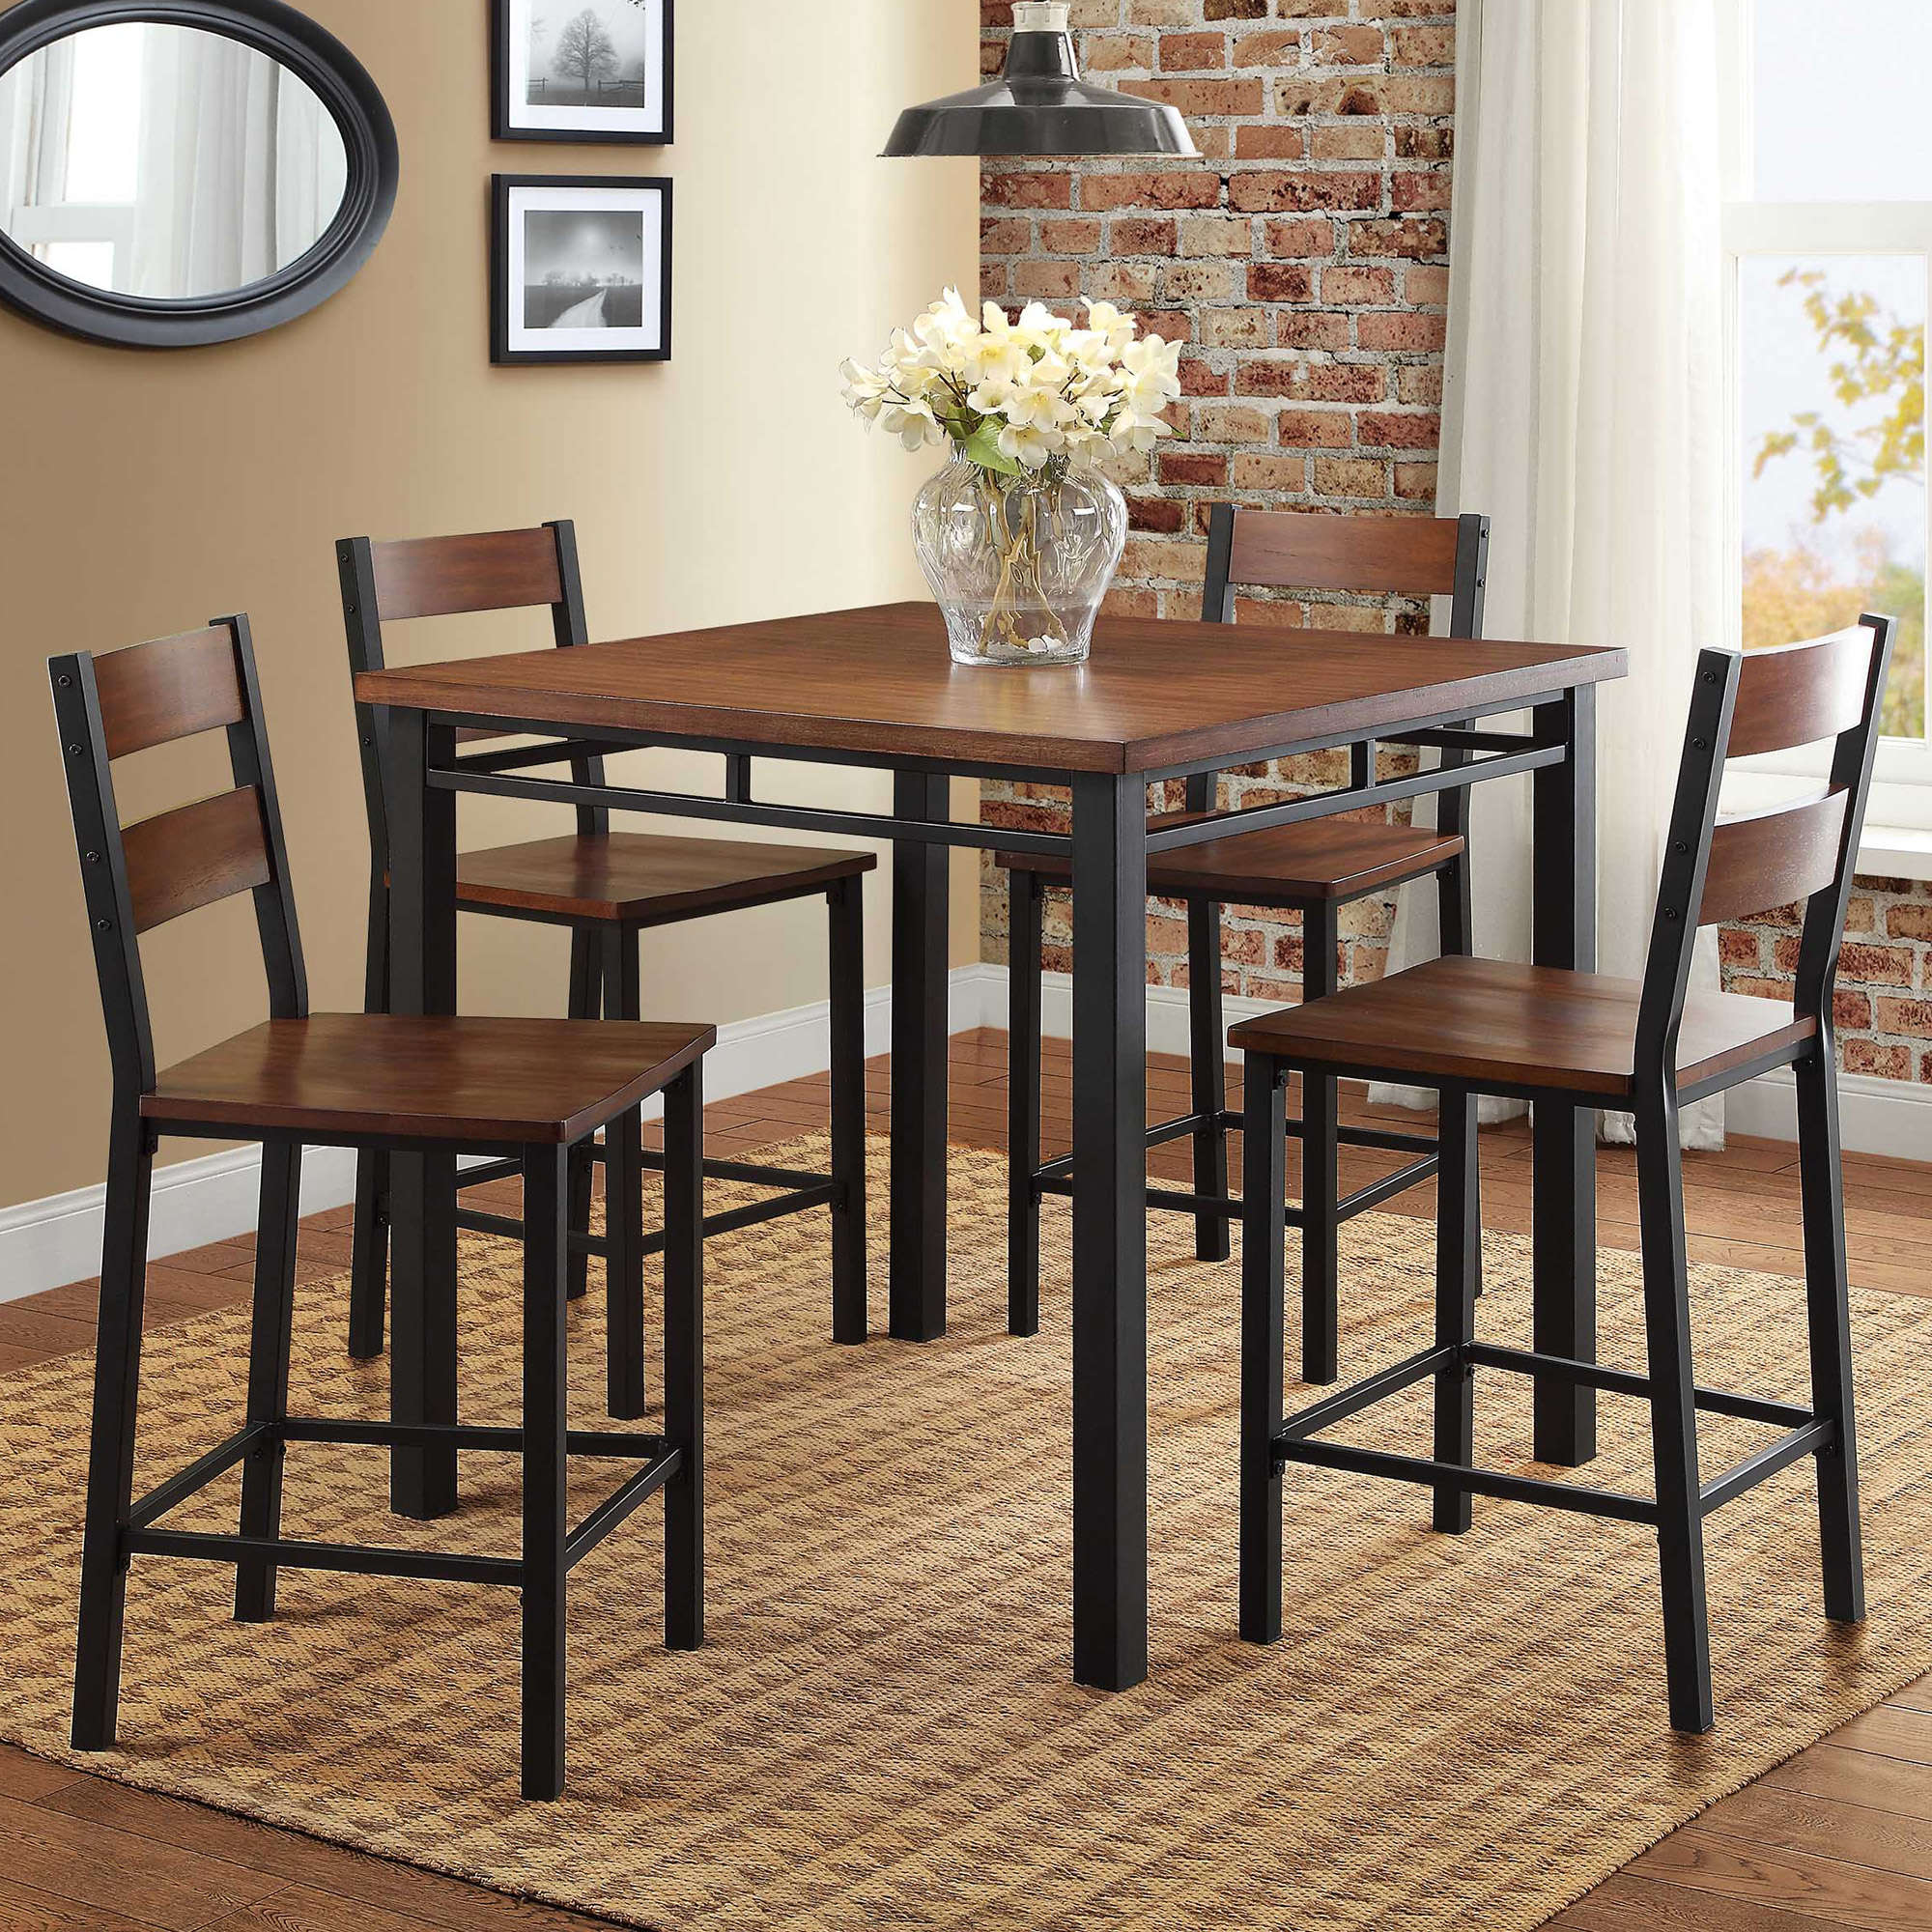 Better Homes & Gardens Mercer 5-Piece Counter Height Dining Set